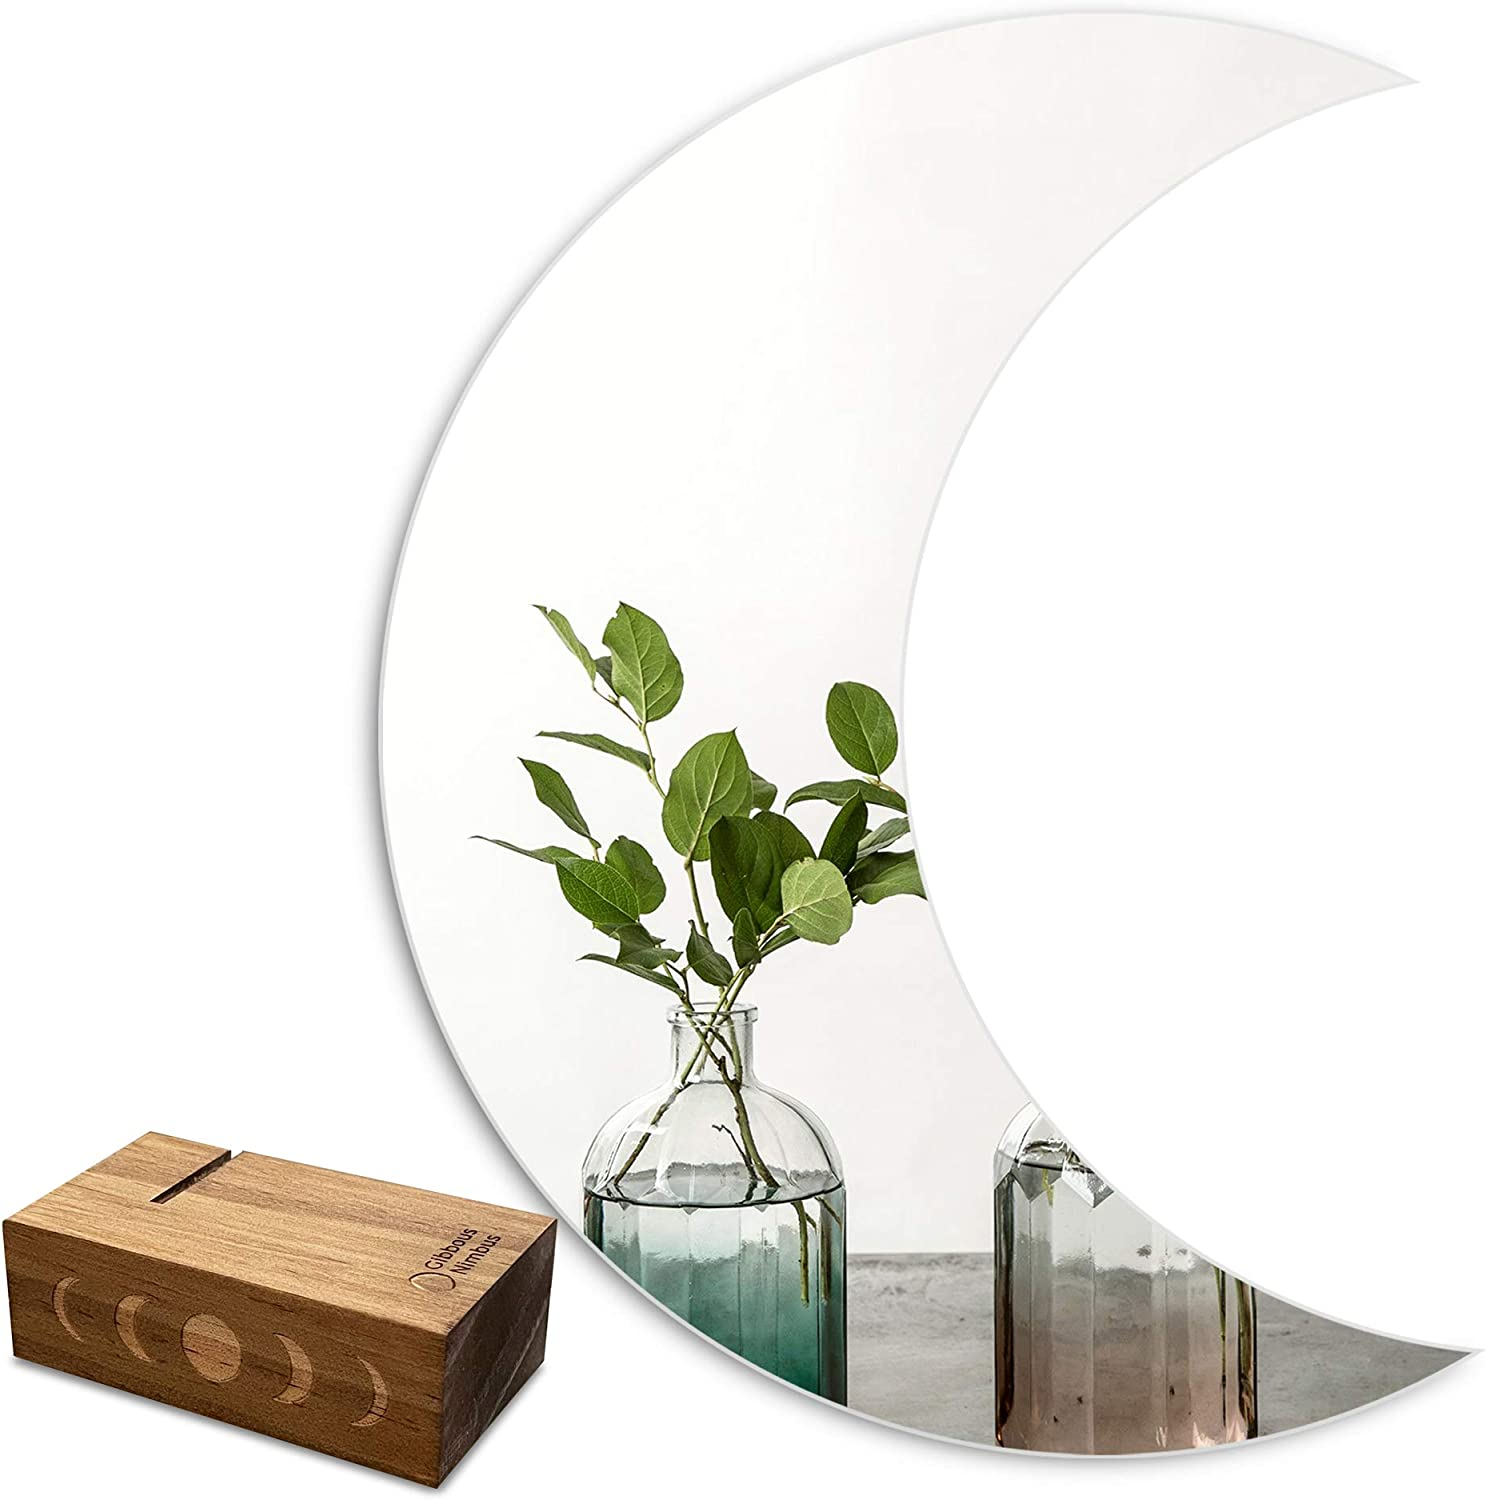 Gibbous Nimbus Crescent Moon Mirror with Moon Phase Wooden Base, Real Glass Mirror Wall Decor, Chic Boho Home Decor Witchy Decor Apartment Crystal Nursery Decorative Mirror